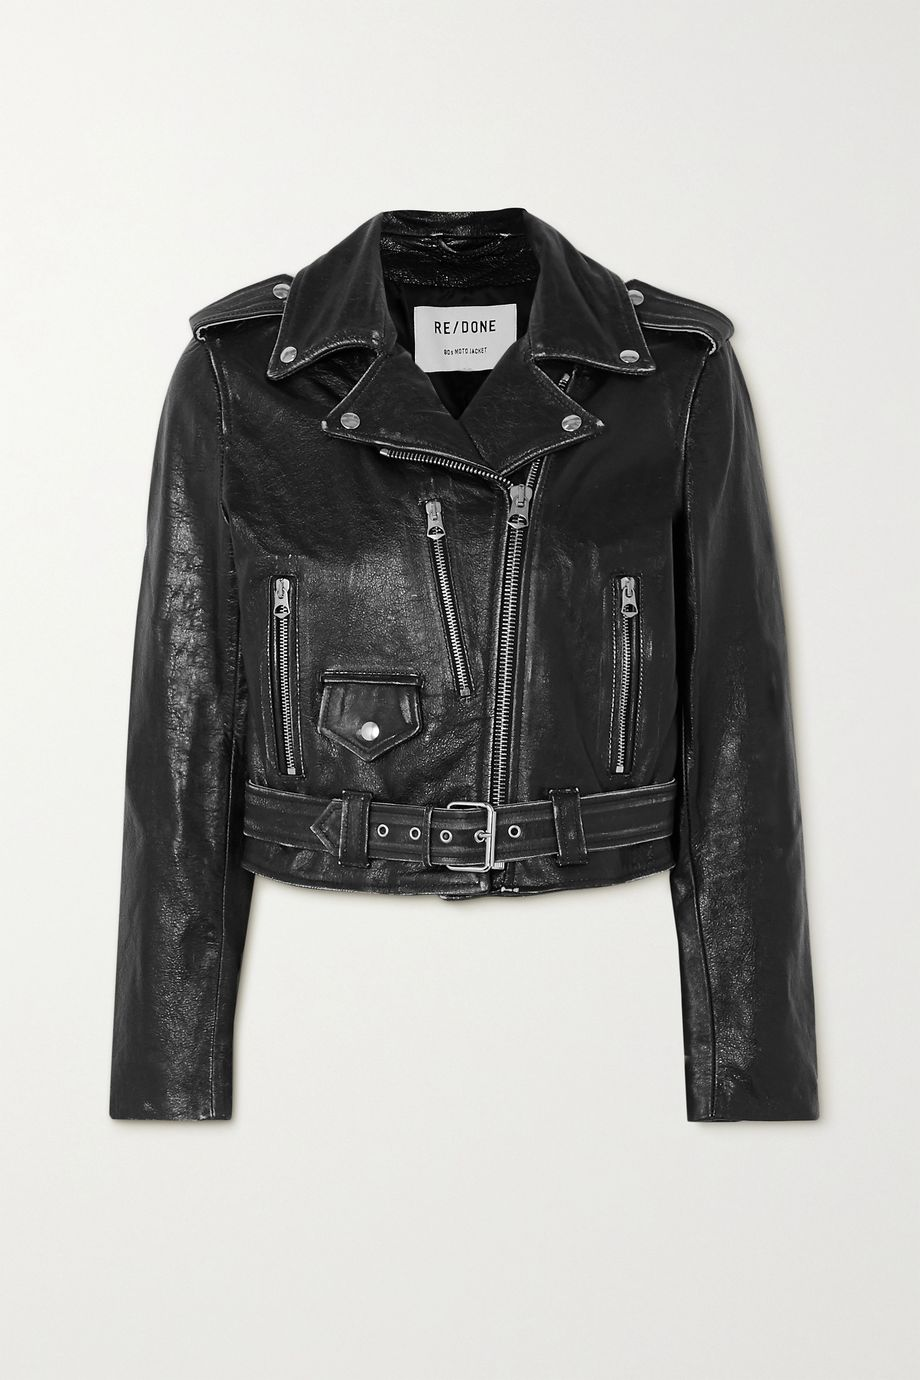 RE/DONE Distressed leather jacket